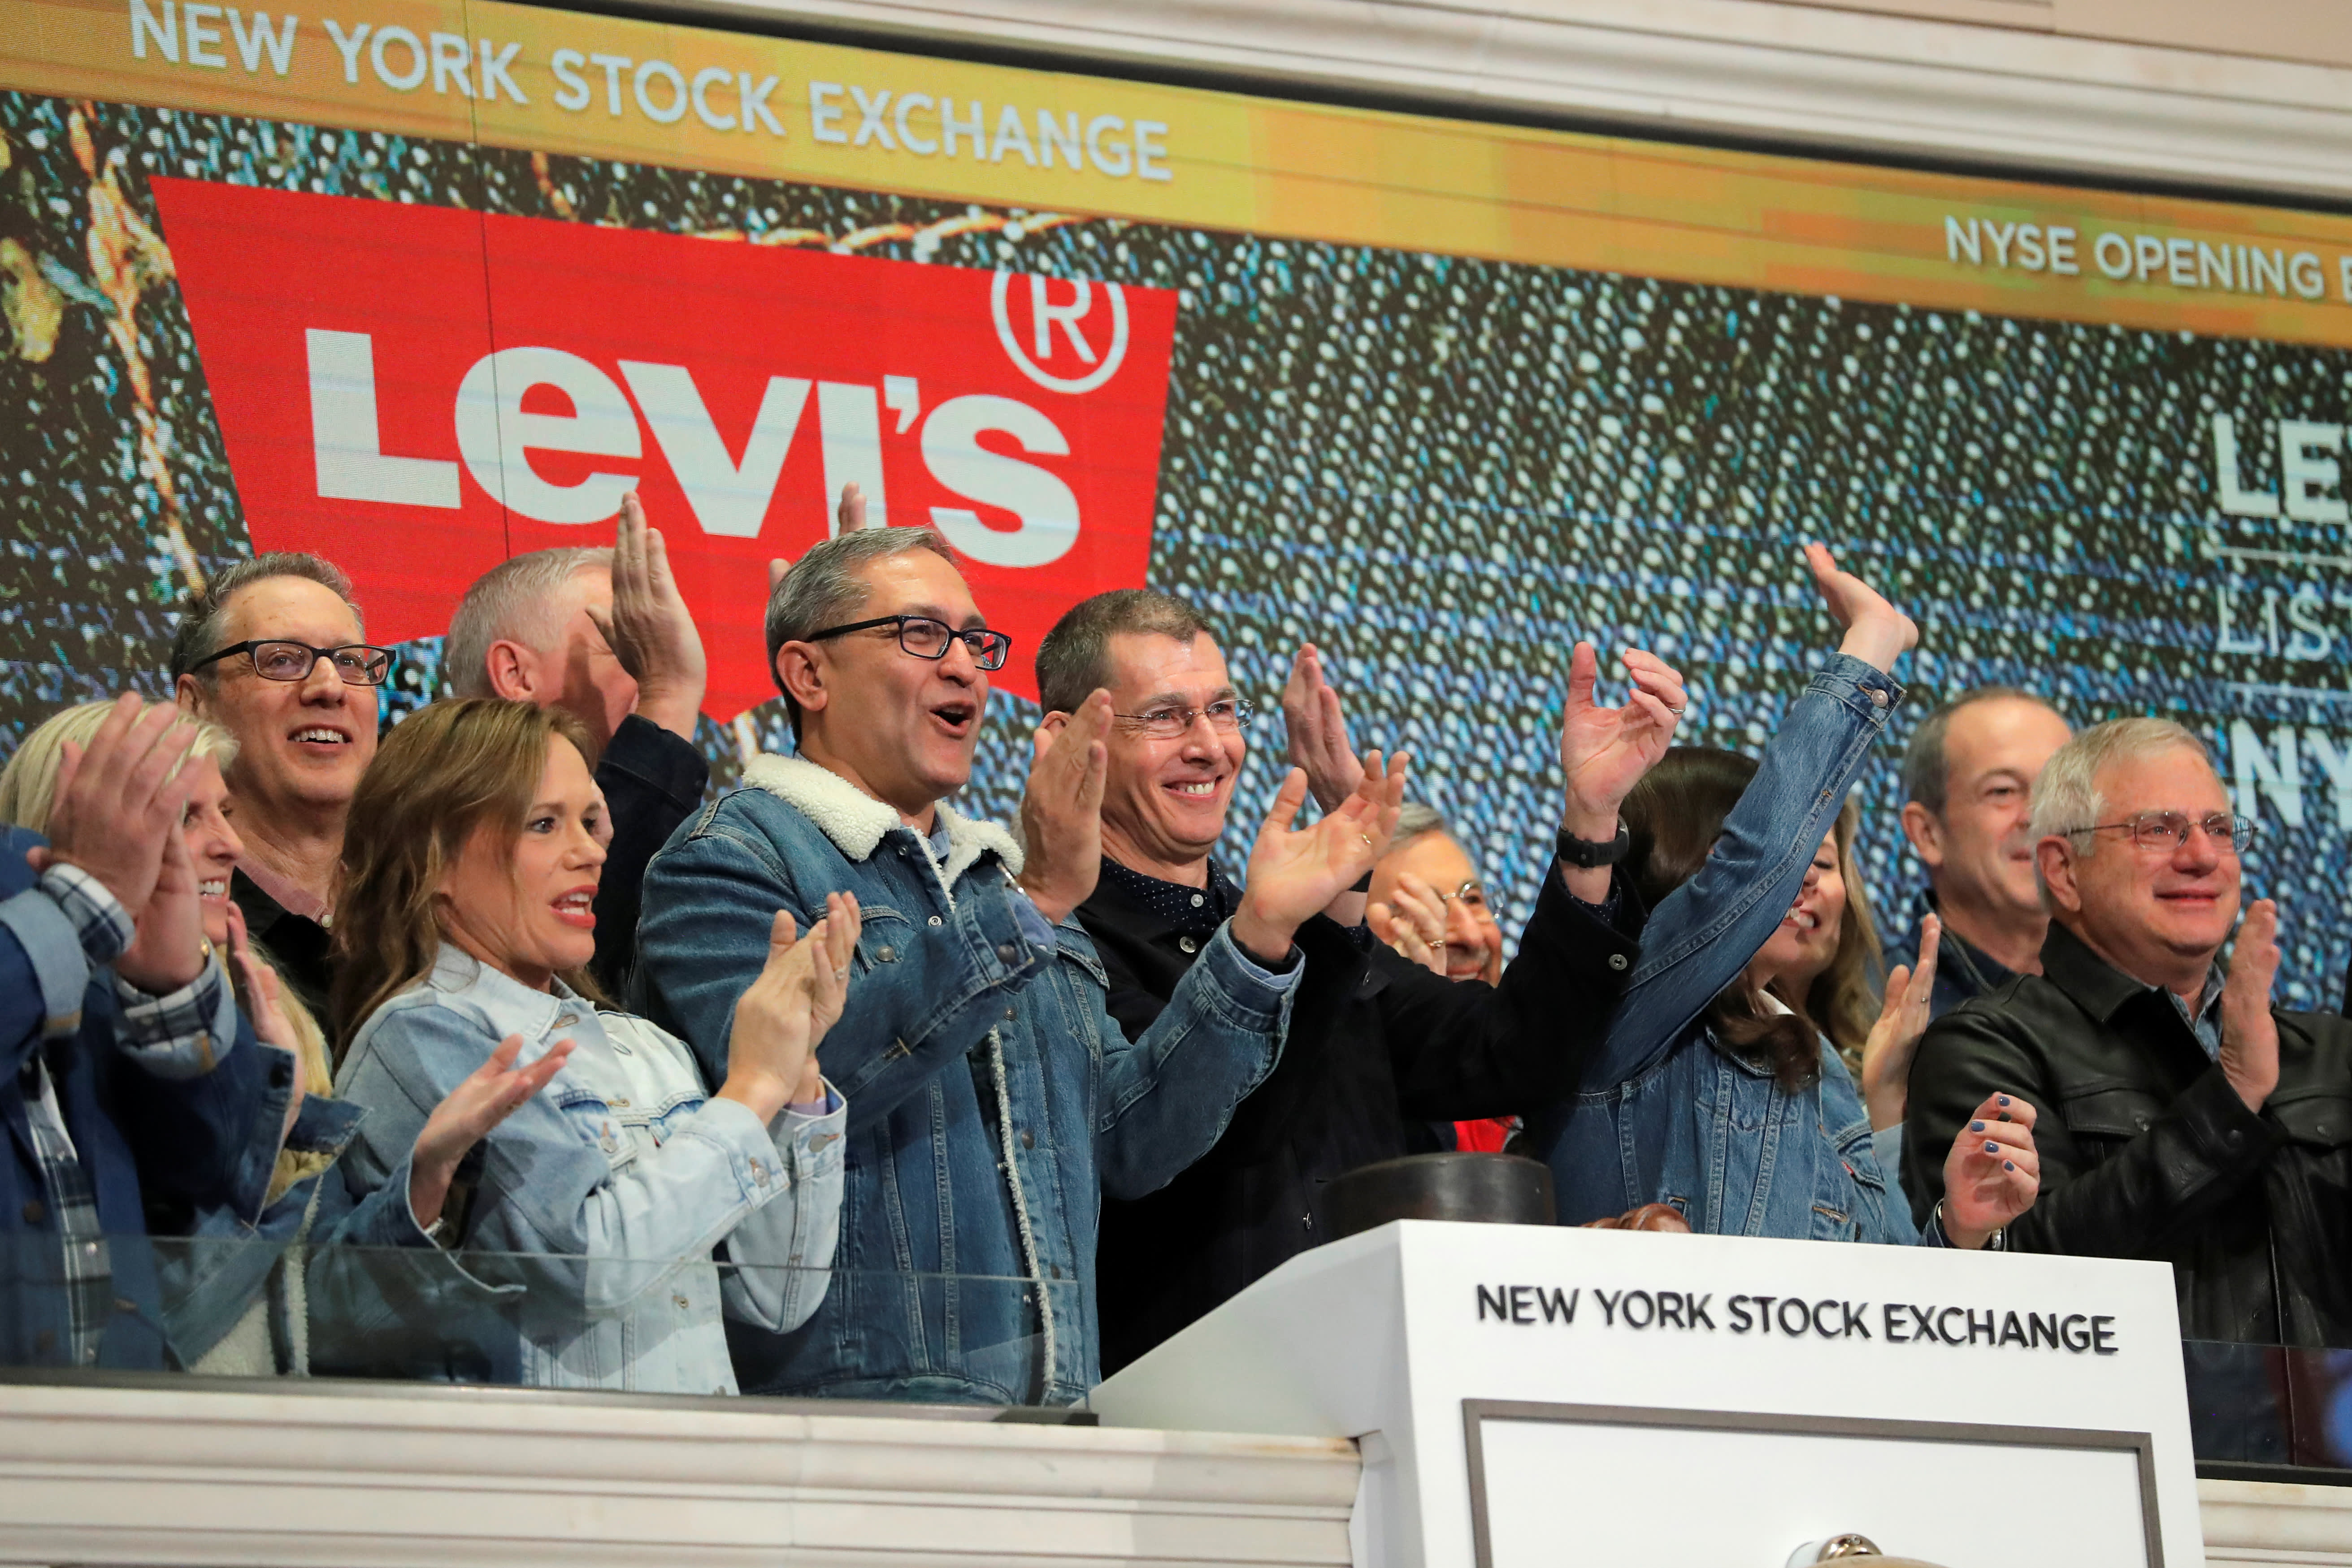 Calls of the day: Levi, Wells Fargo, Nokia, Five Below & more